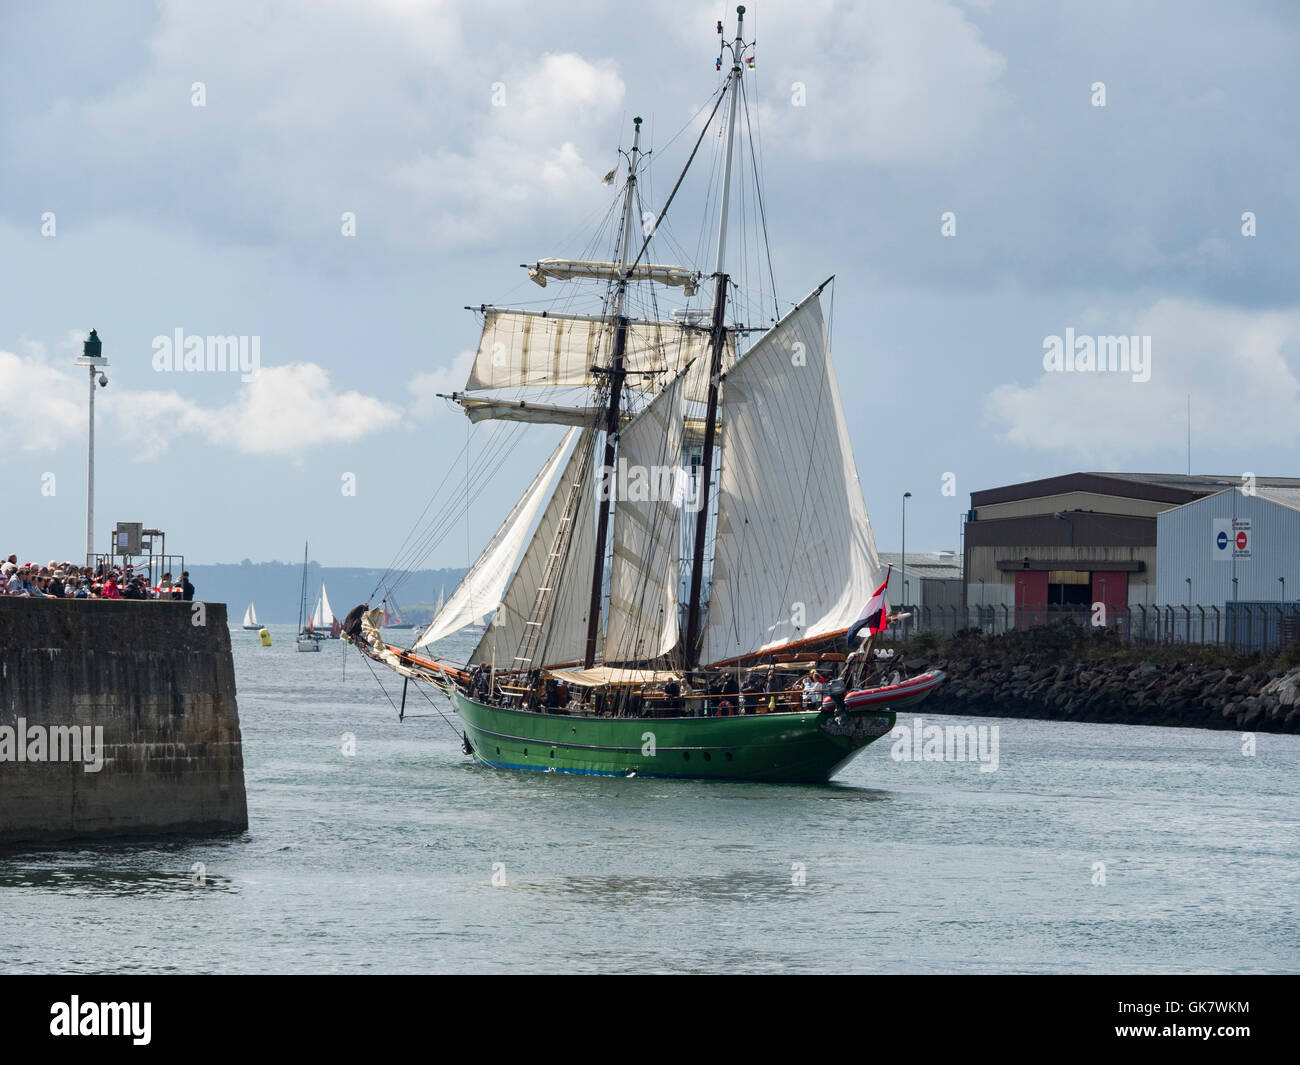 L' Avatar, full  sails, sailing in La Penfeld, during the Brest's International Maritime Festival 2016. - Stock Image